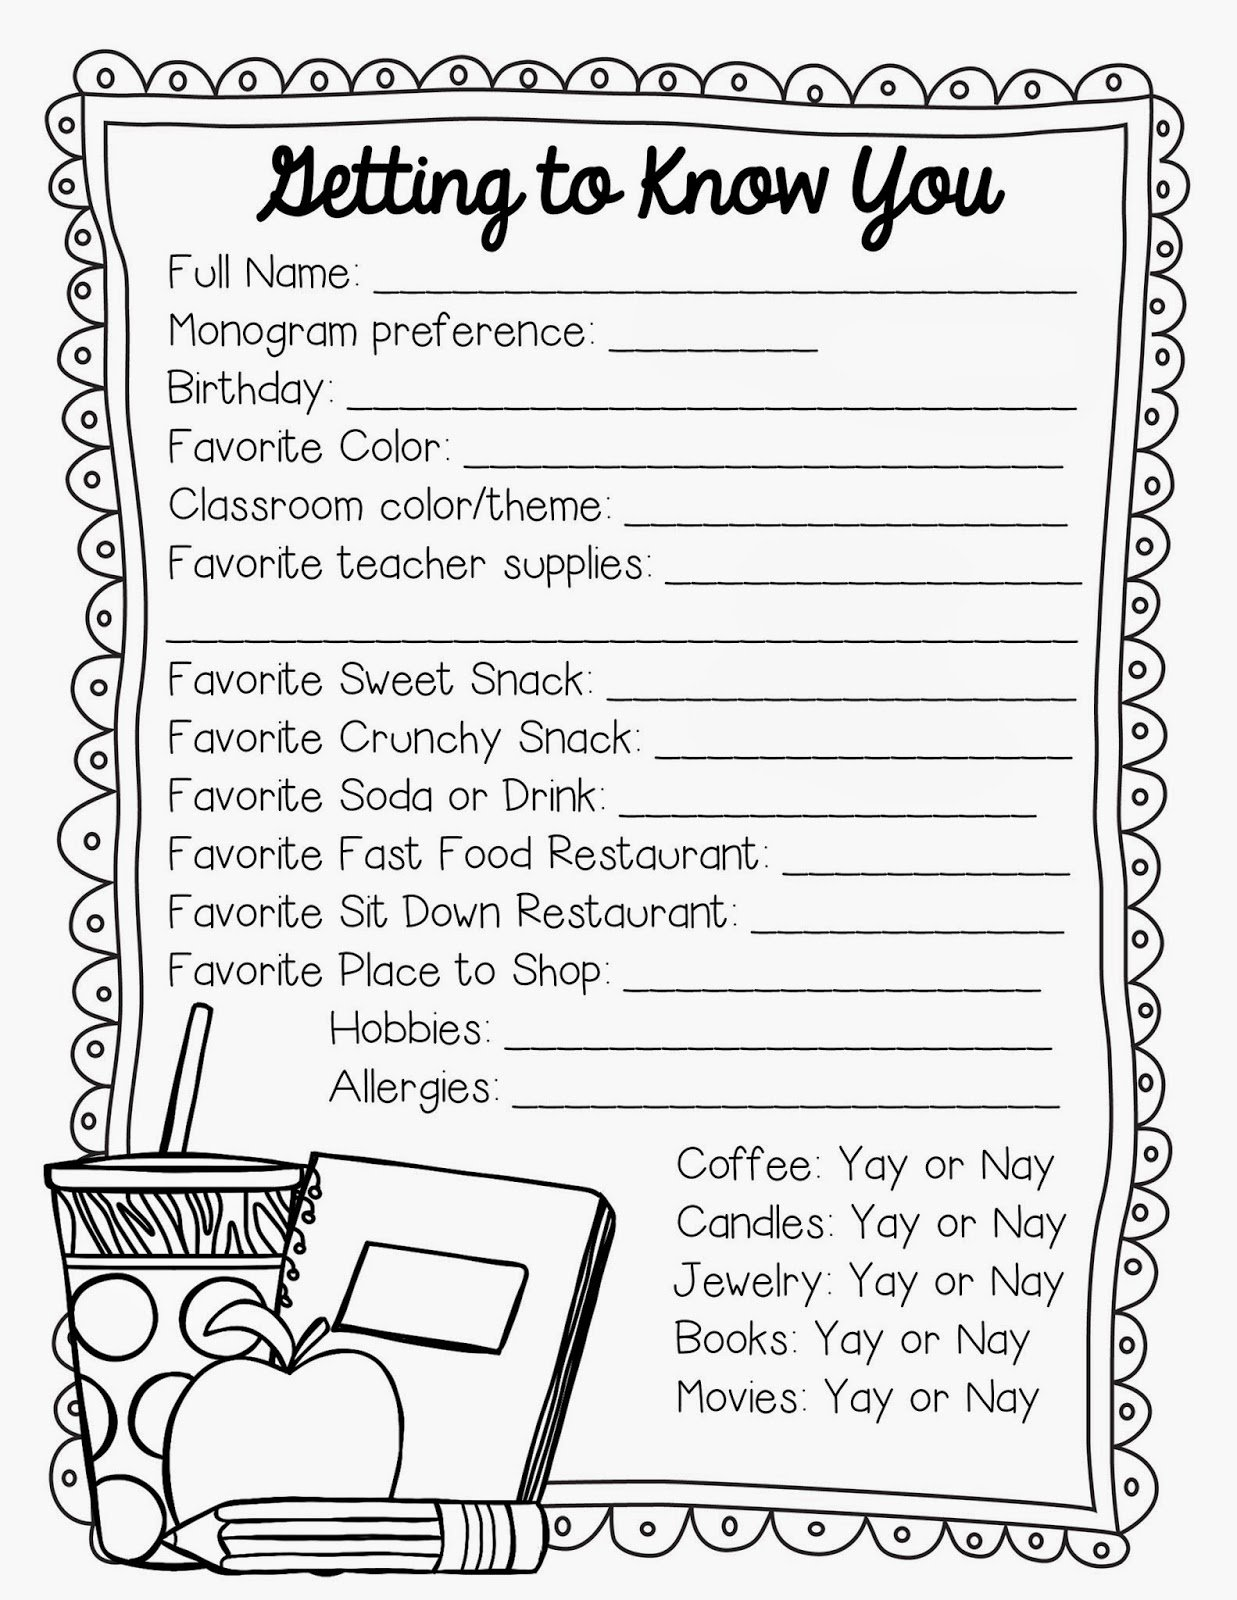 Getting To Know Students Worksheet Worksheets For All Download And